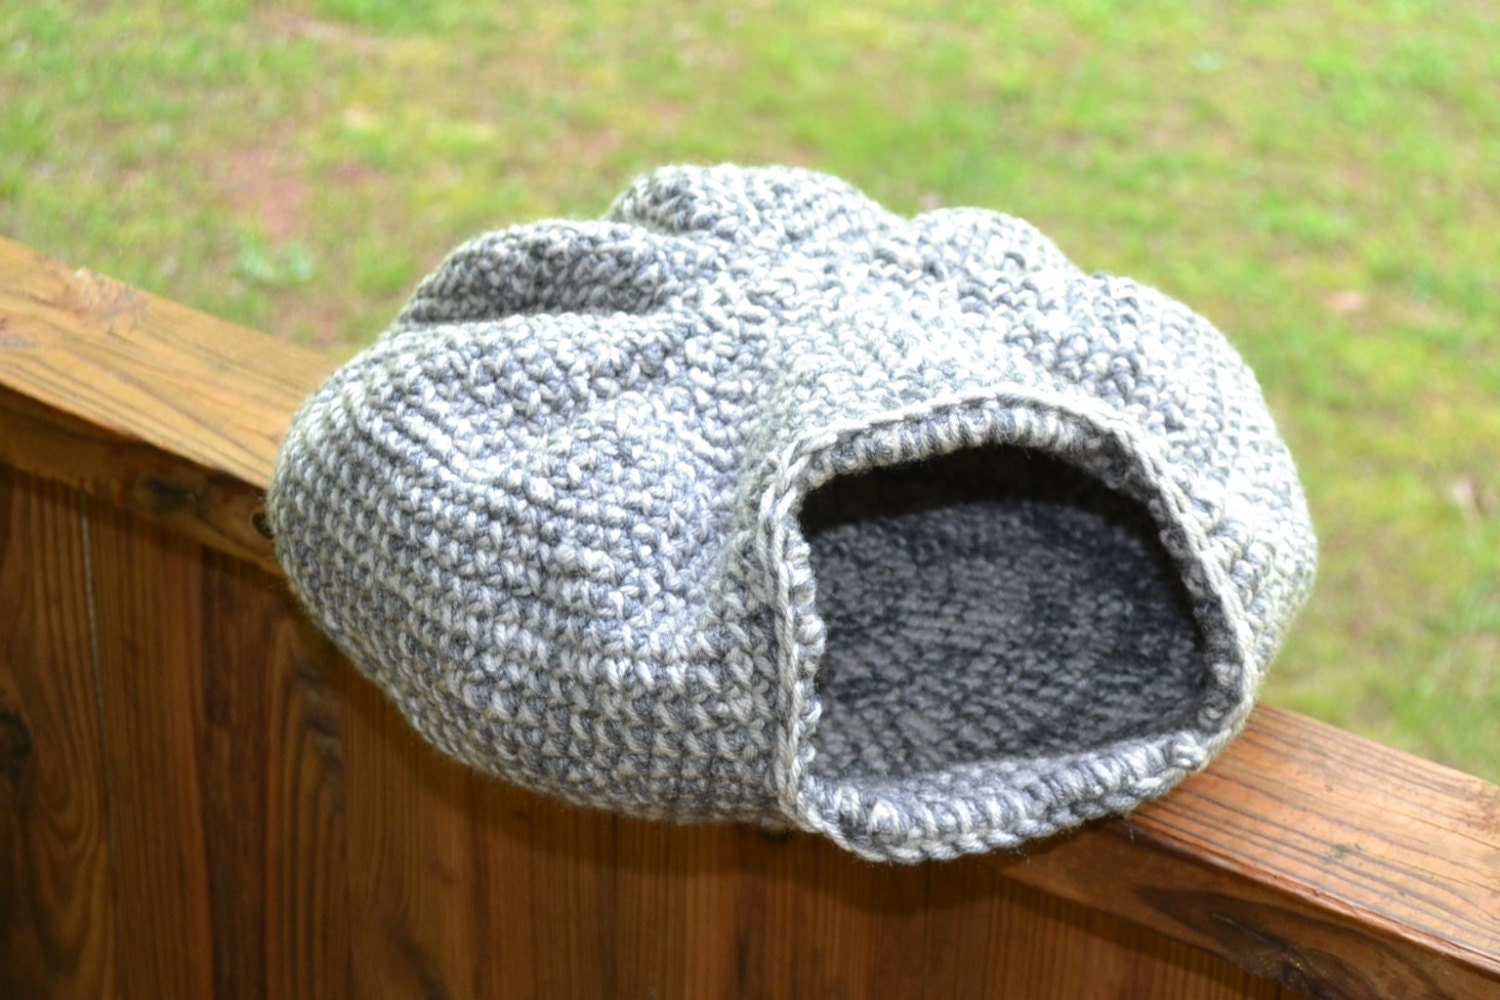 Free Crochet Pattern For A Cat Bed : Crochet Cat Cave Gray and White Neutral Pet Bed Handmade